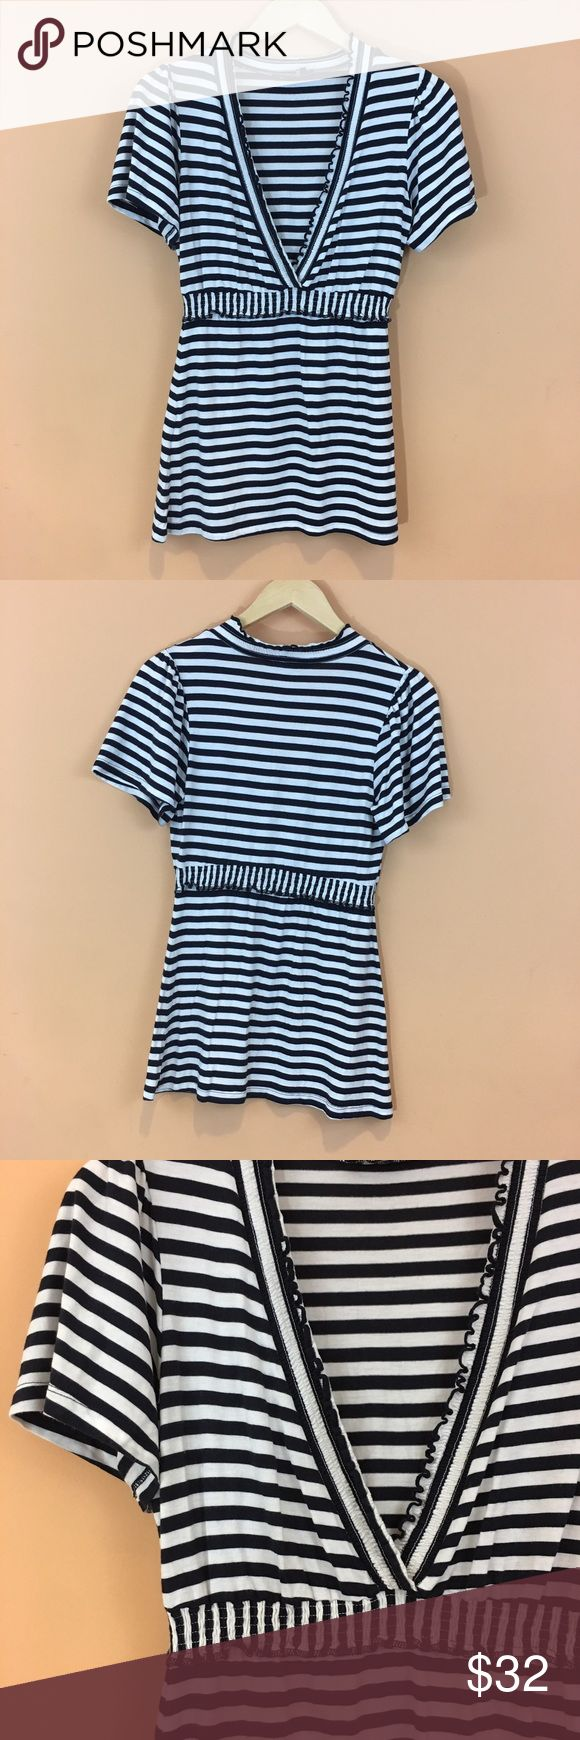 "BCBG MaxAzria Deep V Neck Striped Top Size Small BCBG MaxAzria Deep V Neck Striped Top Size Small Black & Stripes  Smock waistband  Pit to pit 18'  Length 27.5""  Wasit 14.5"" stretches to 19"" BCBGMaxAzria Tops"